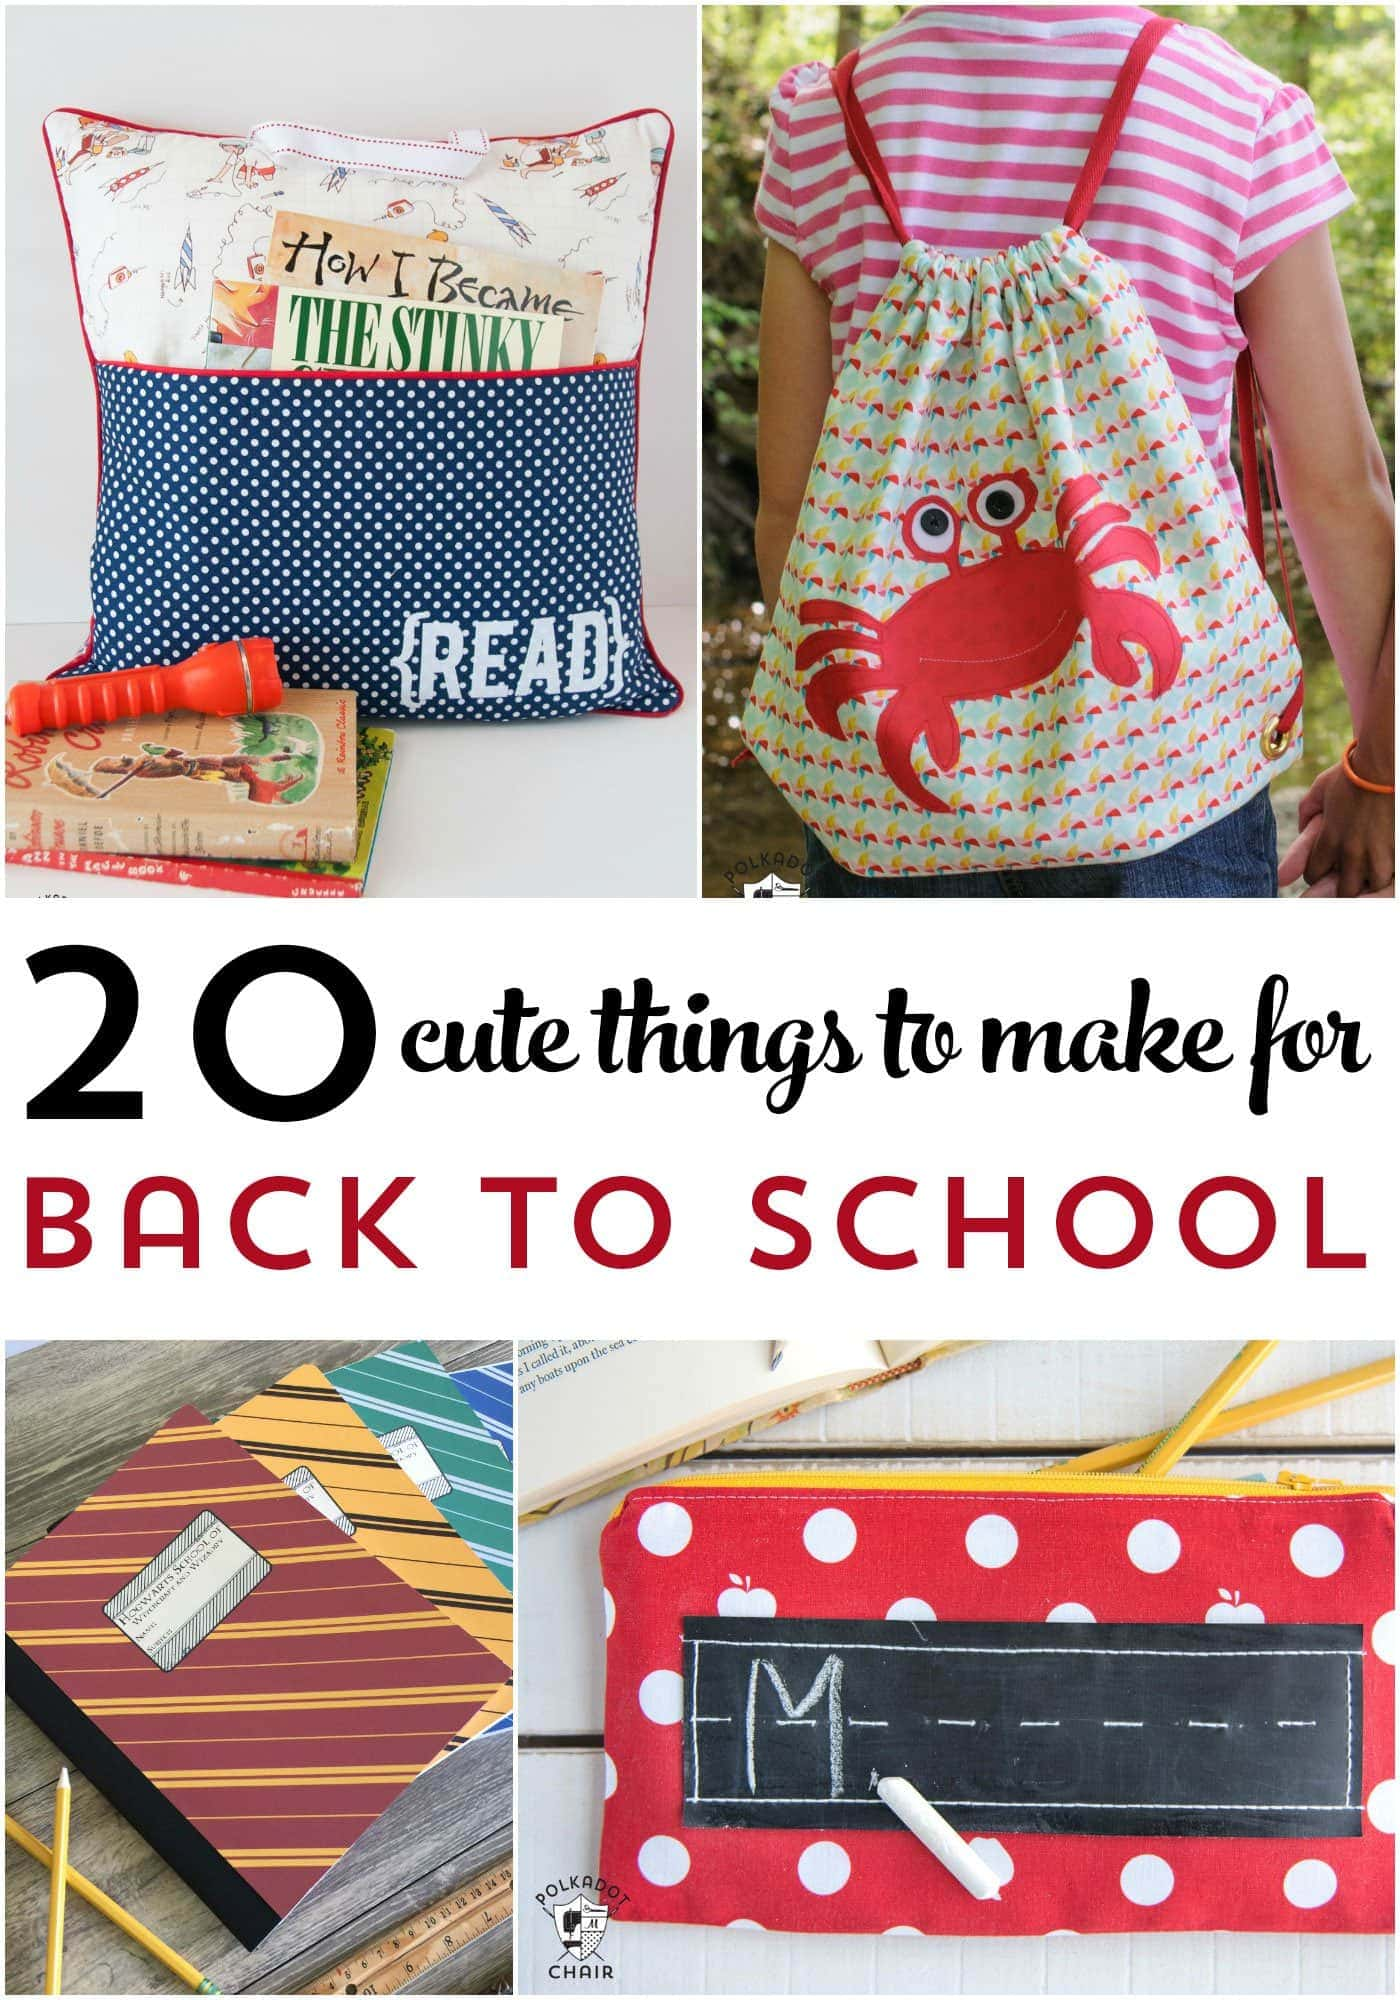 20 Cute Things to Make for Back to School  The Polka Dot